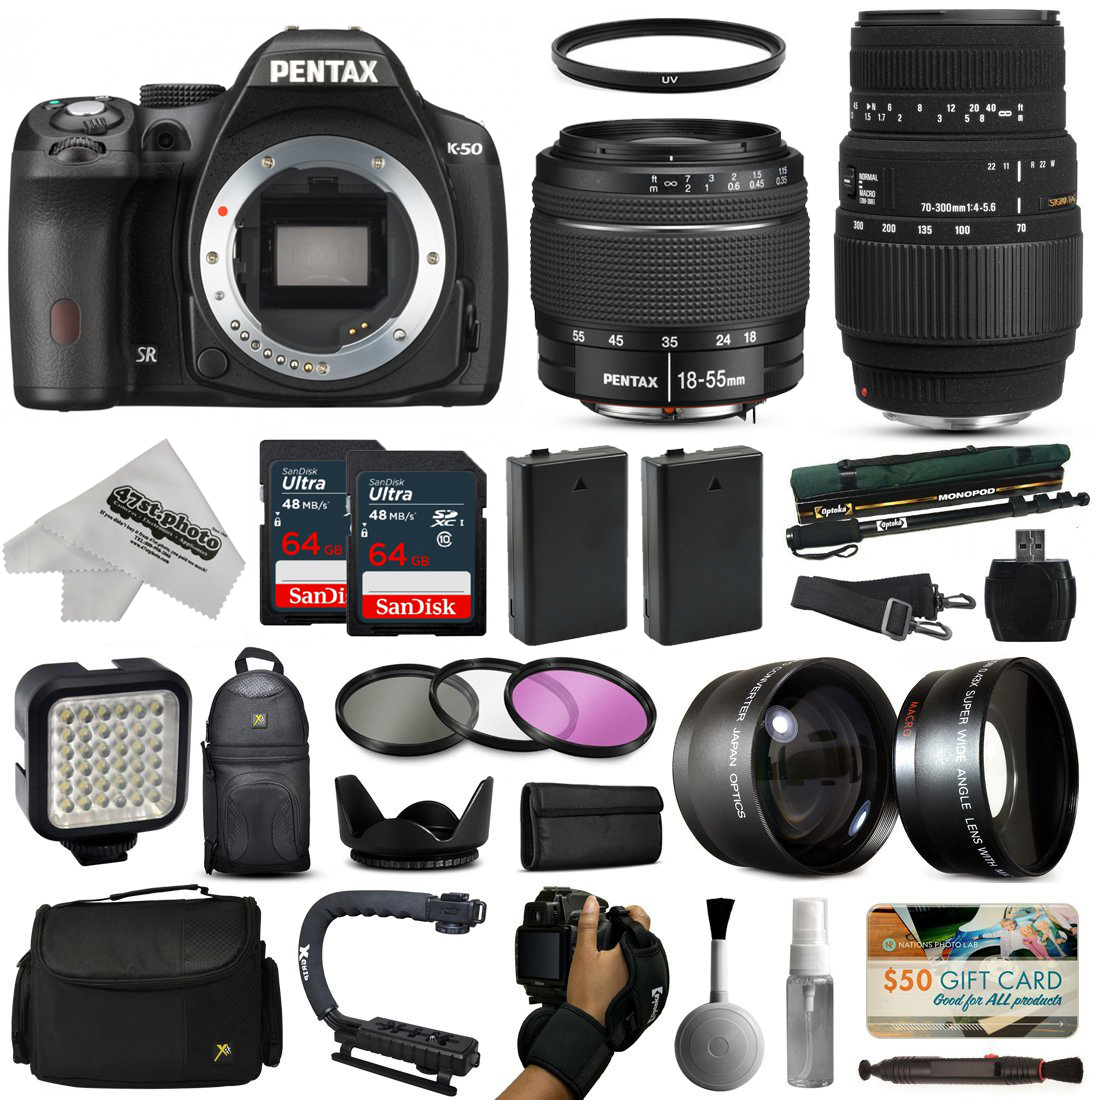 Pentax K-50 DSLR Digital Camera with DA L 18-55mm WR + Sigma 70-300mm Lens + Sandisk 128GB Memory + 2 Batteries + LED Video Light + Backpack + Case + Filters + Auxiliary Lenses + $50 Gift Card + More!